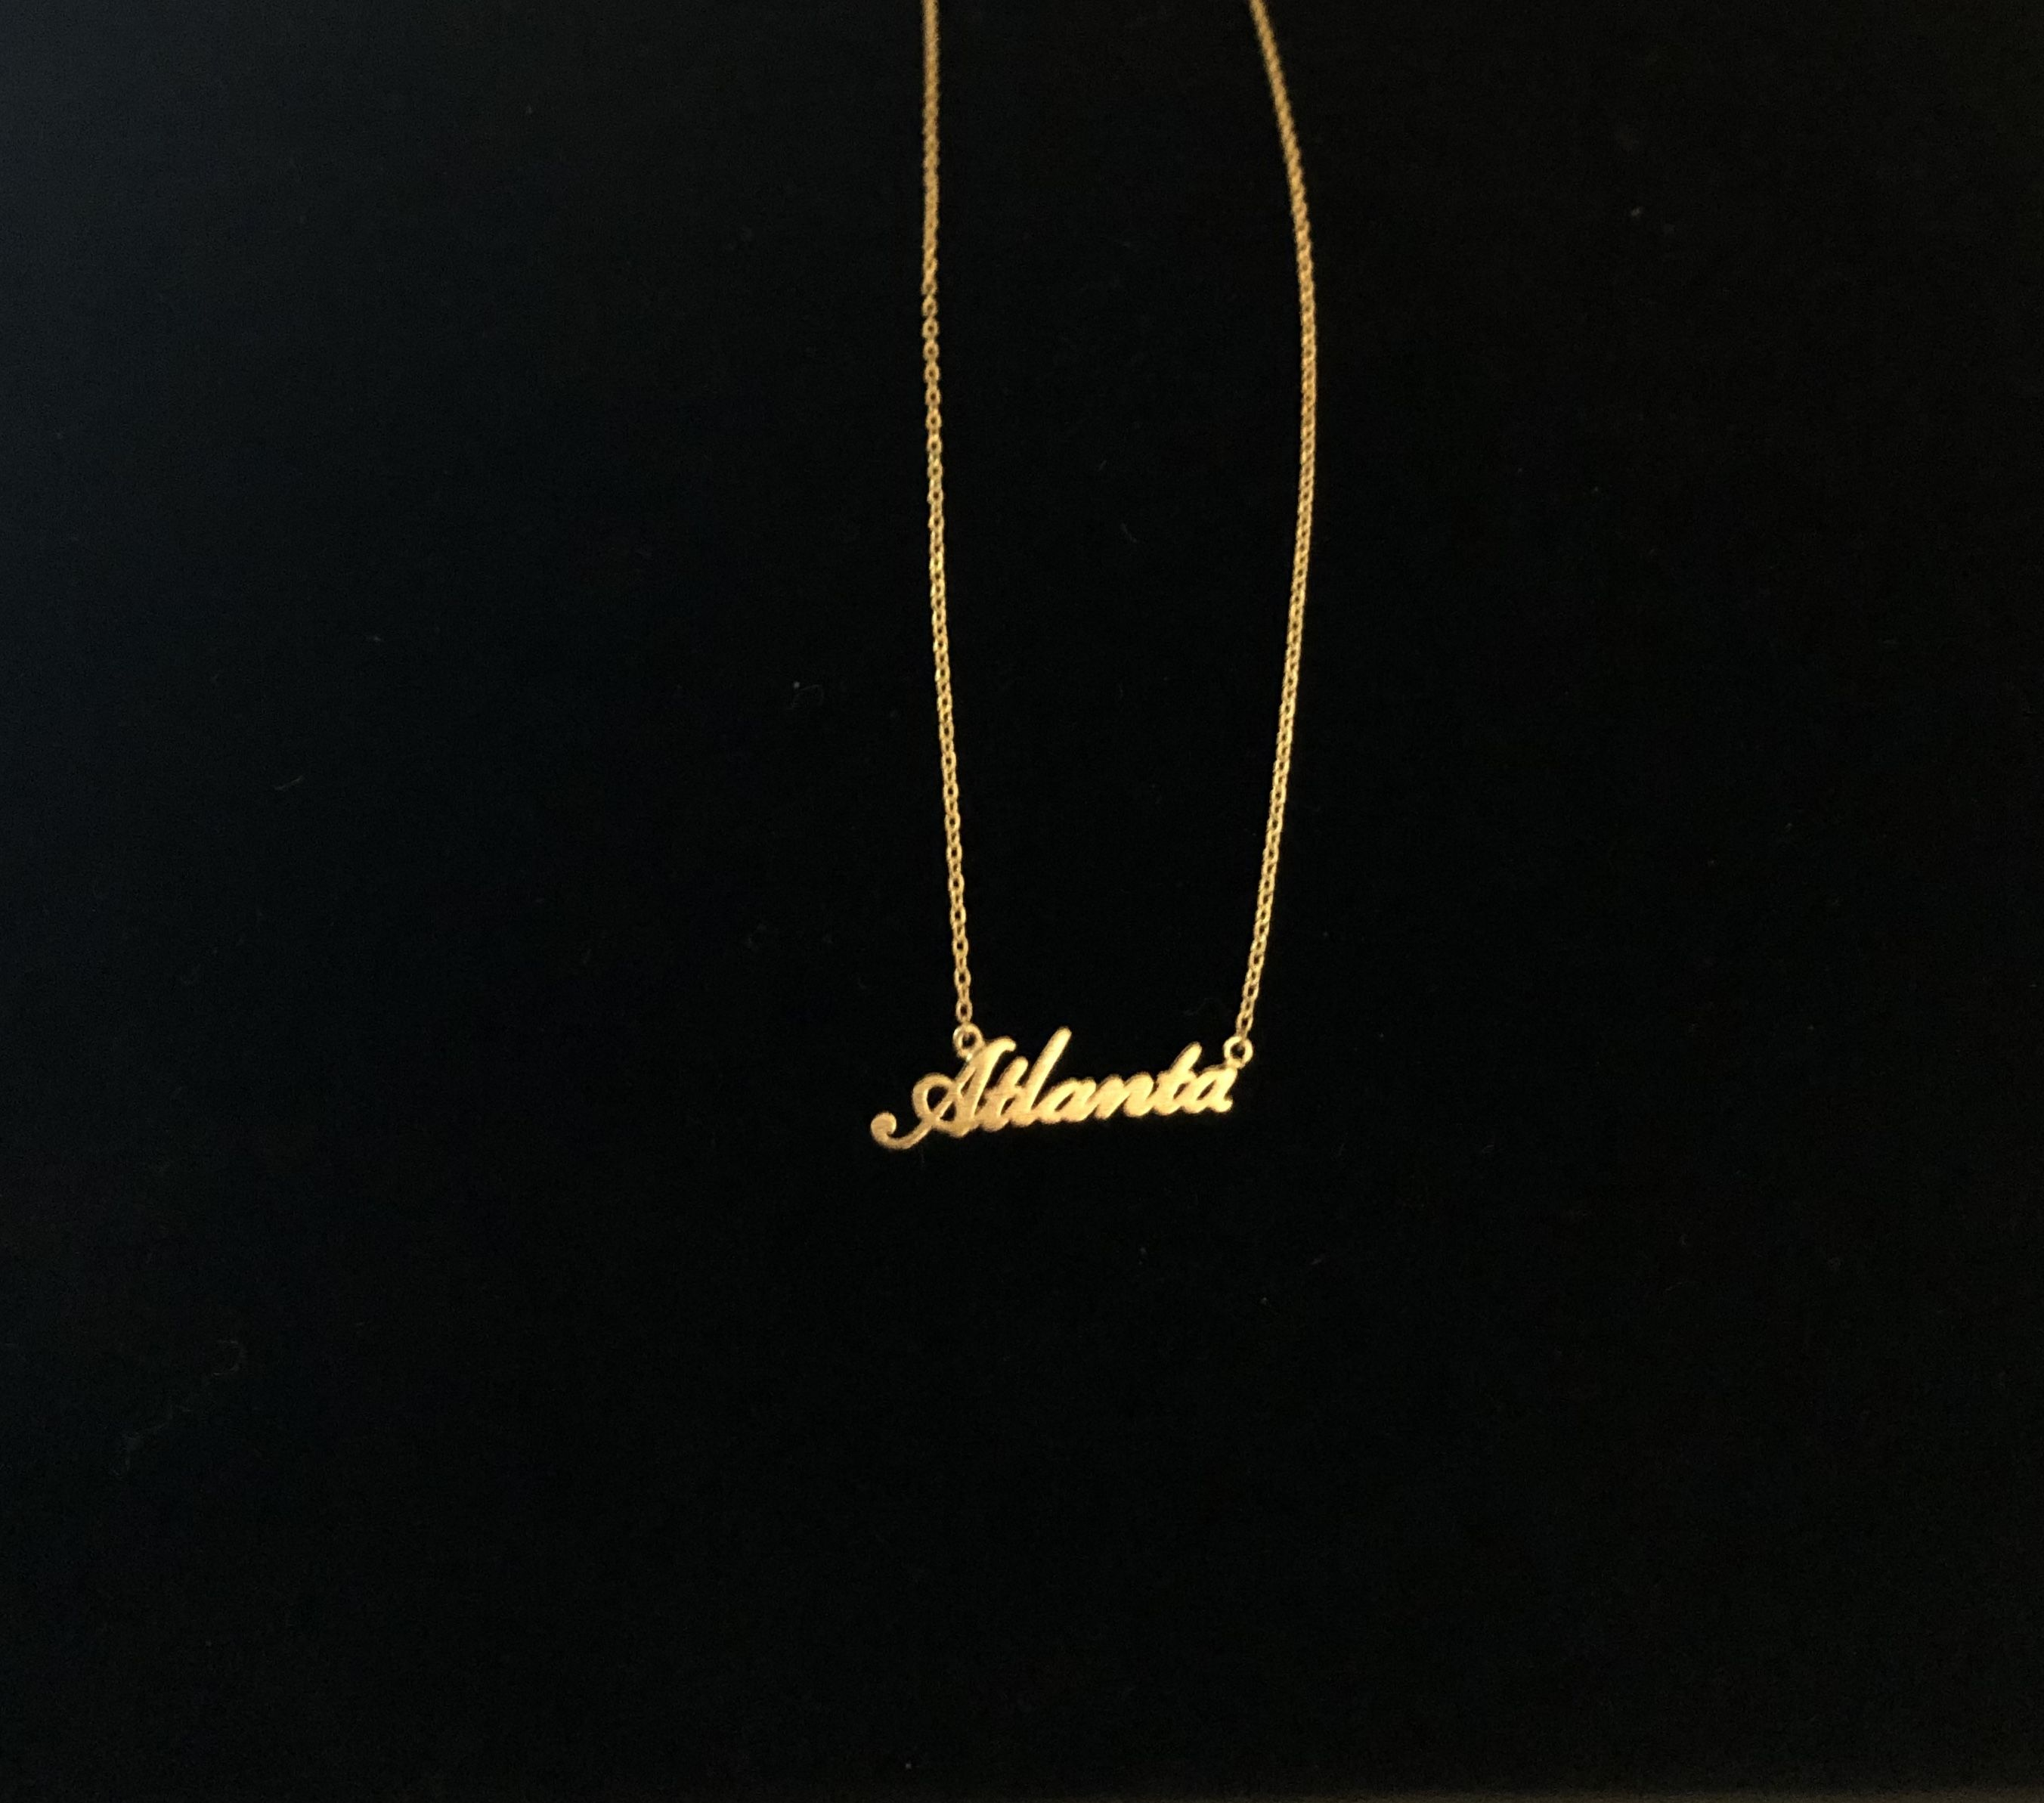 Atlanta Golden Necklace